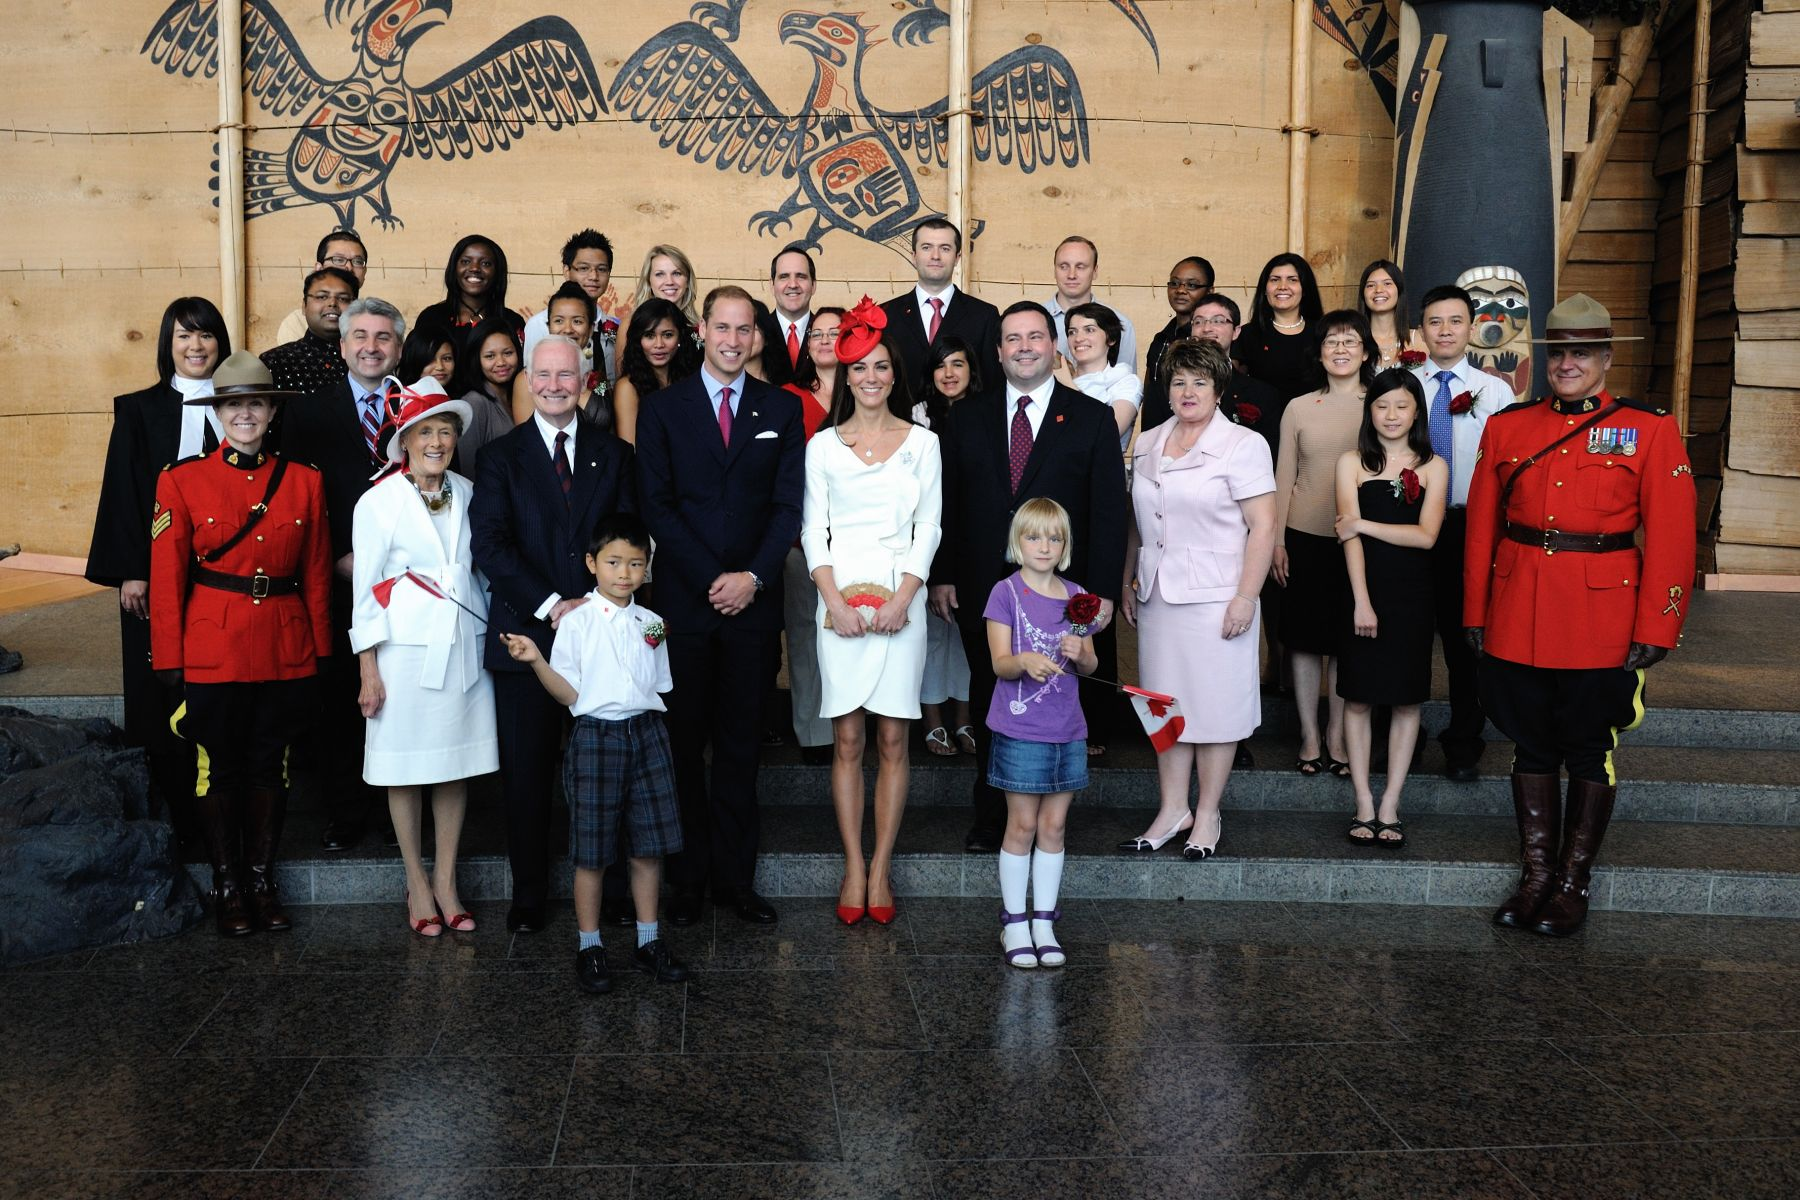 Official photo of Their Royal Highnesses, Their Excellencies and the 25 new Canadians.